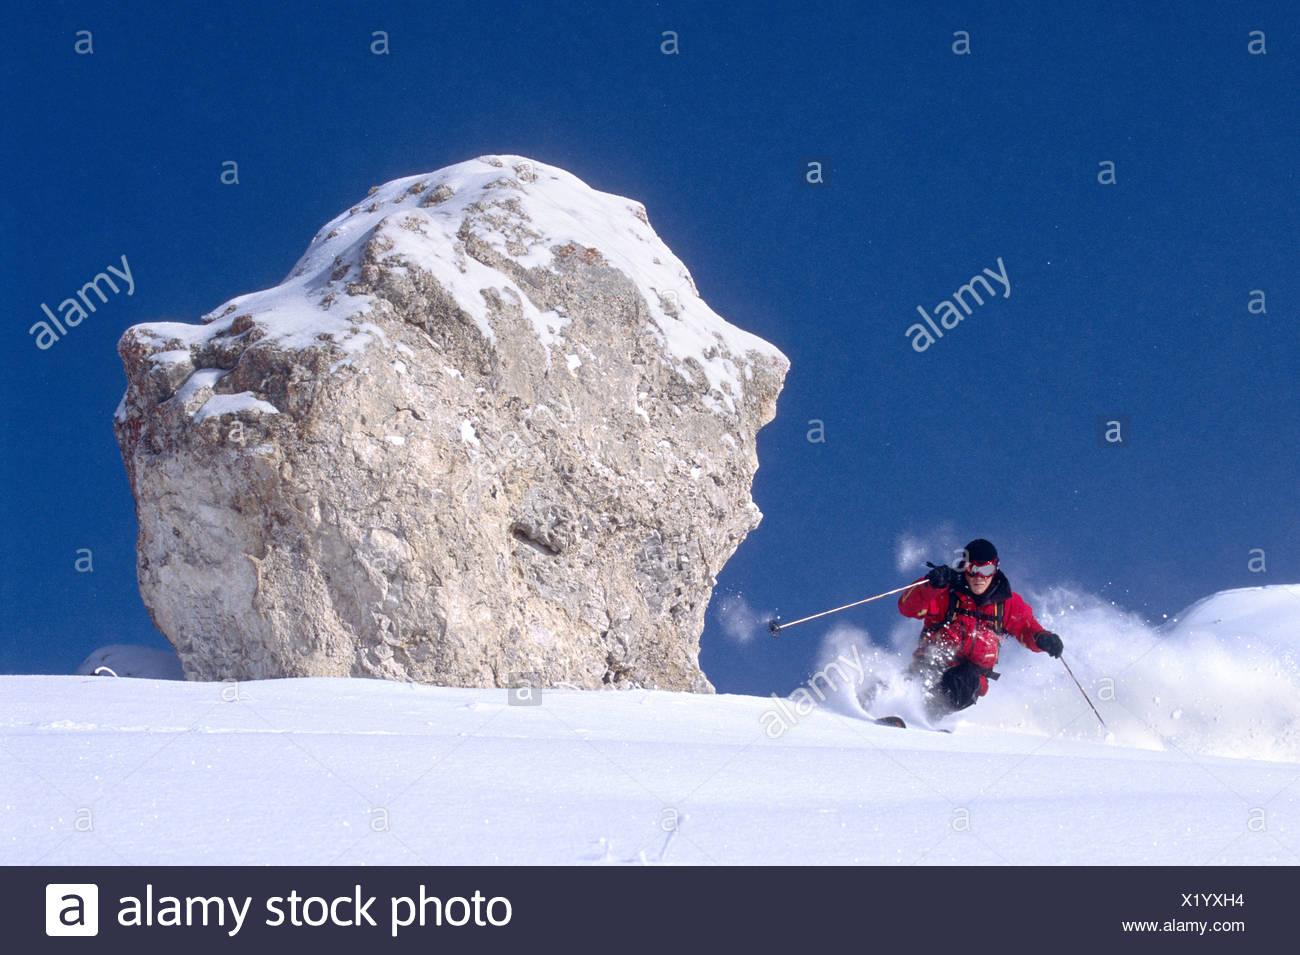 skier passing a single, almost spherical big rock, France, Rhne-Alpes, Les Arcs. - Stock Image